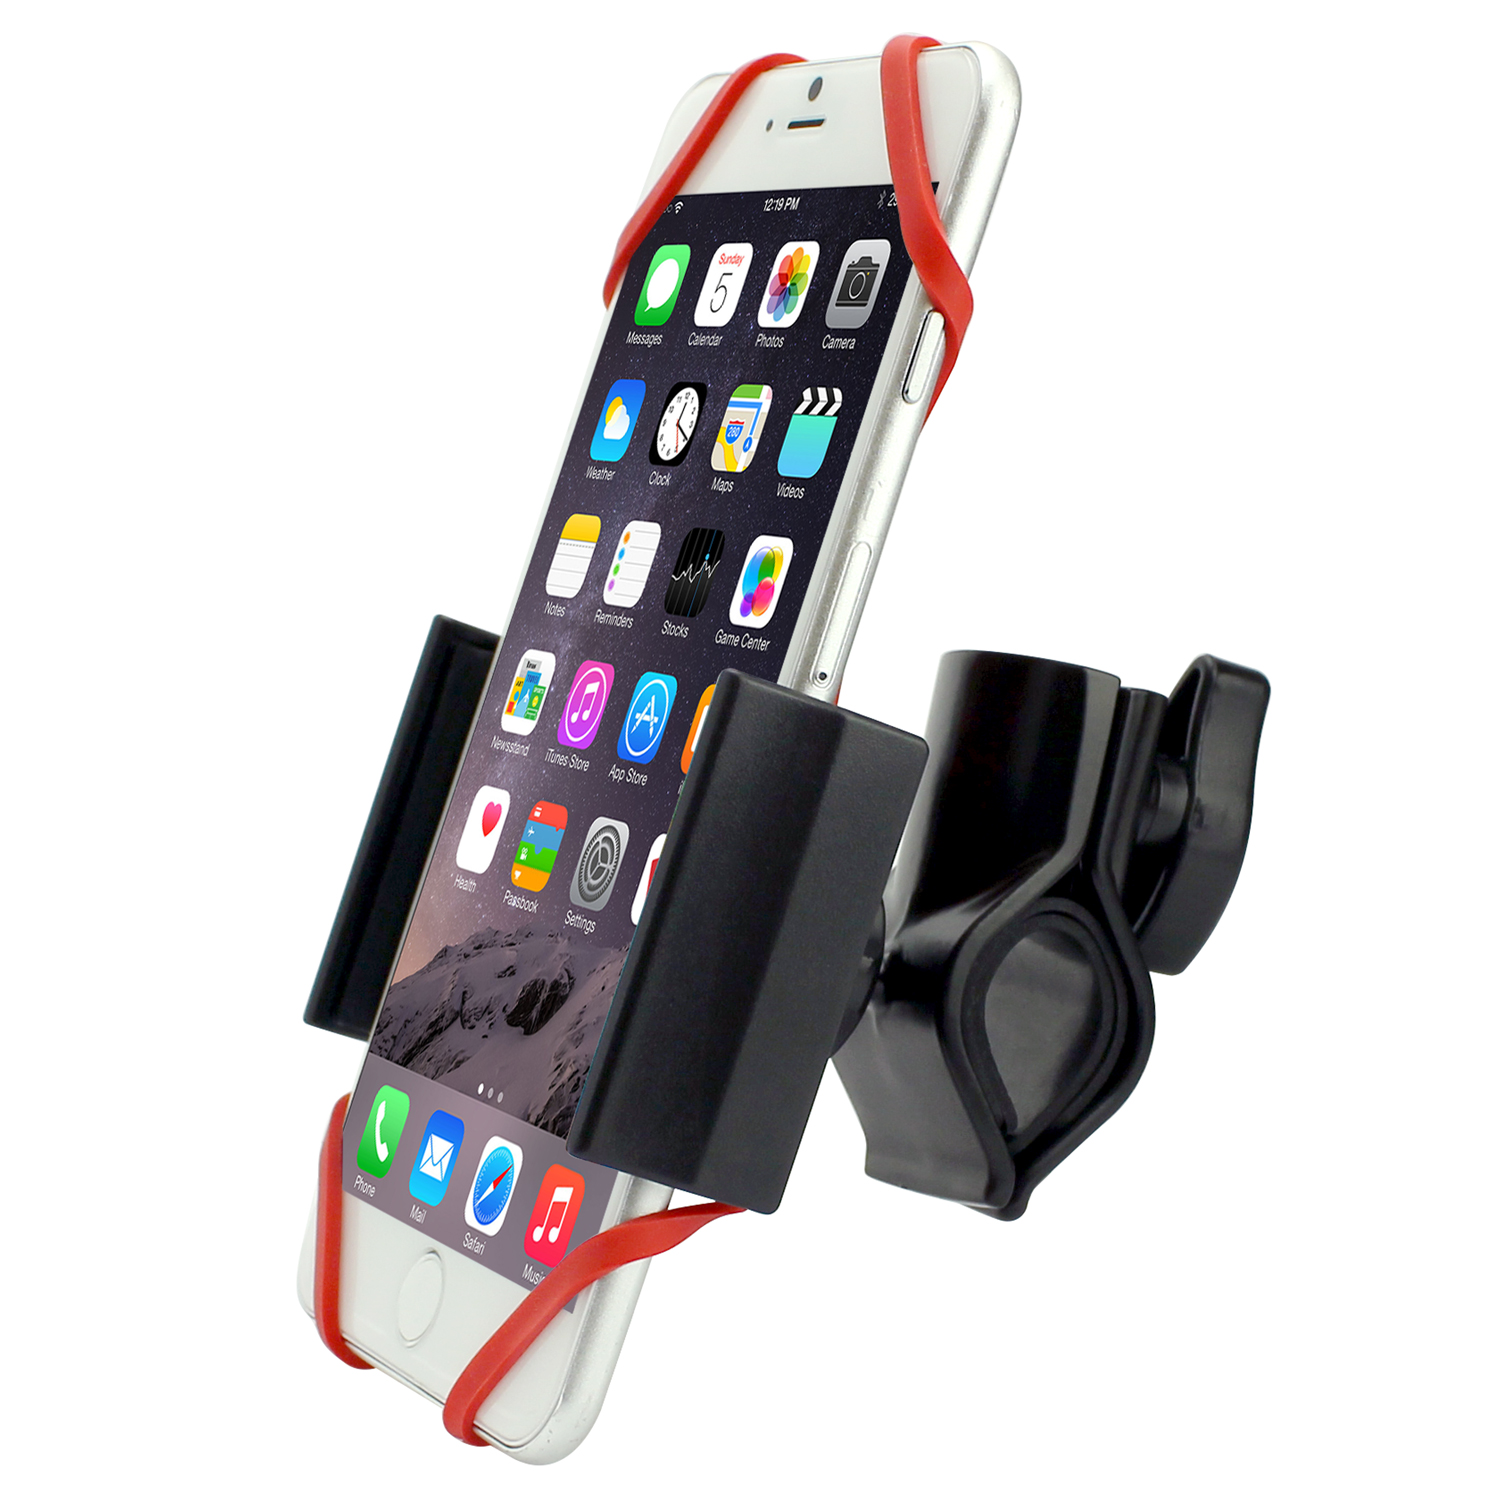 LG G Vista 2 Bike Phone Mount Adjustable Black